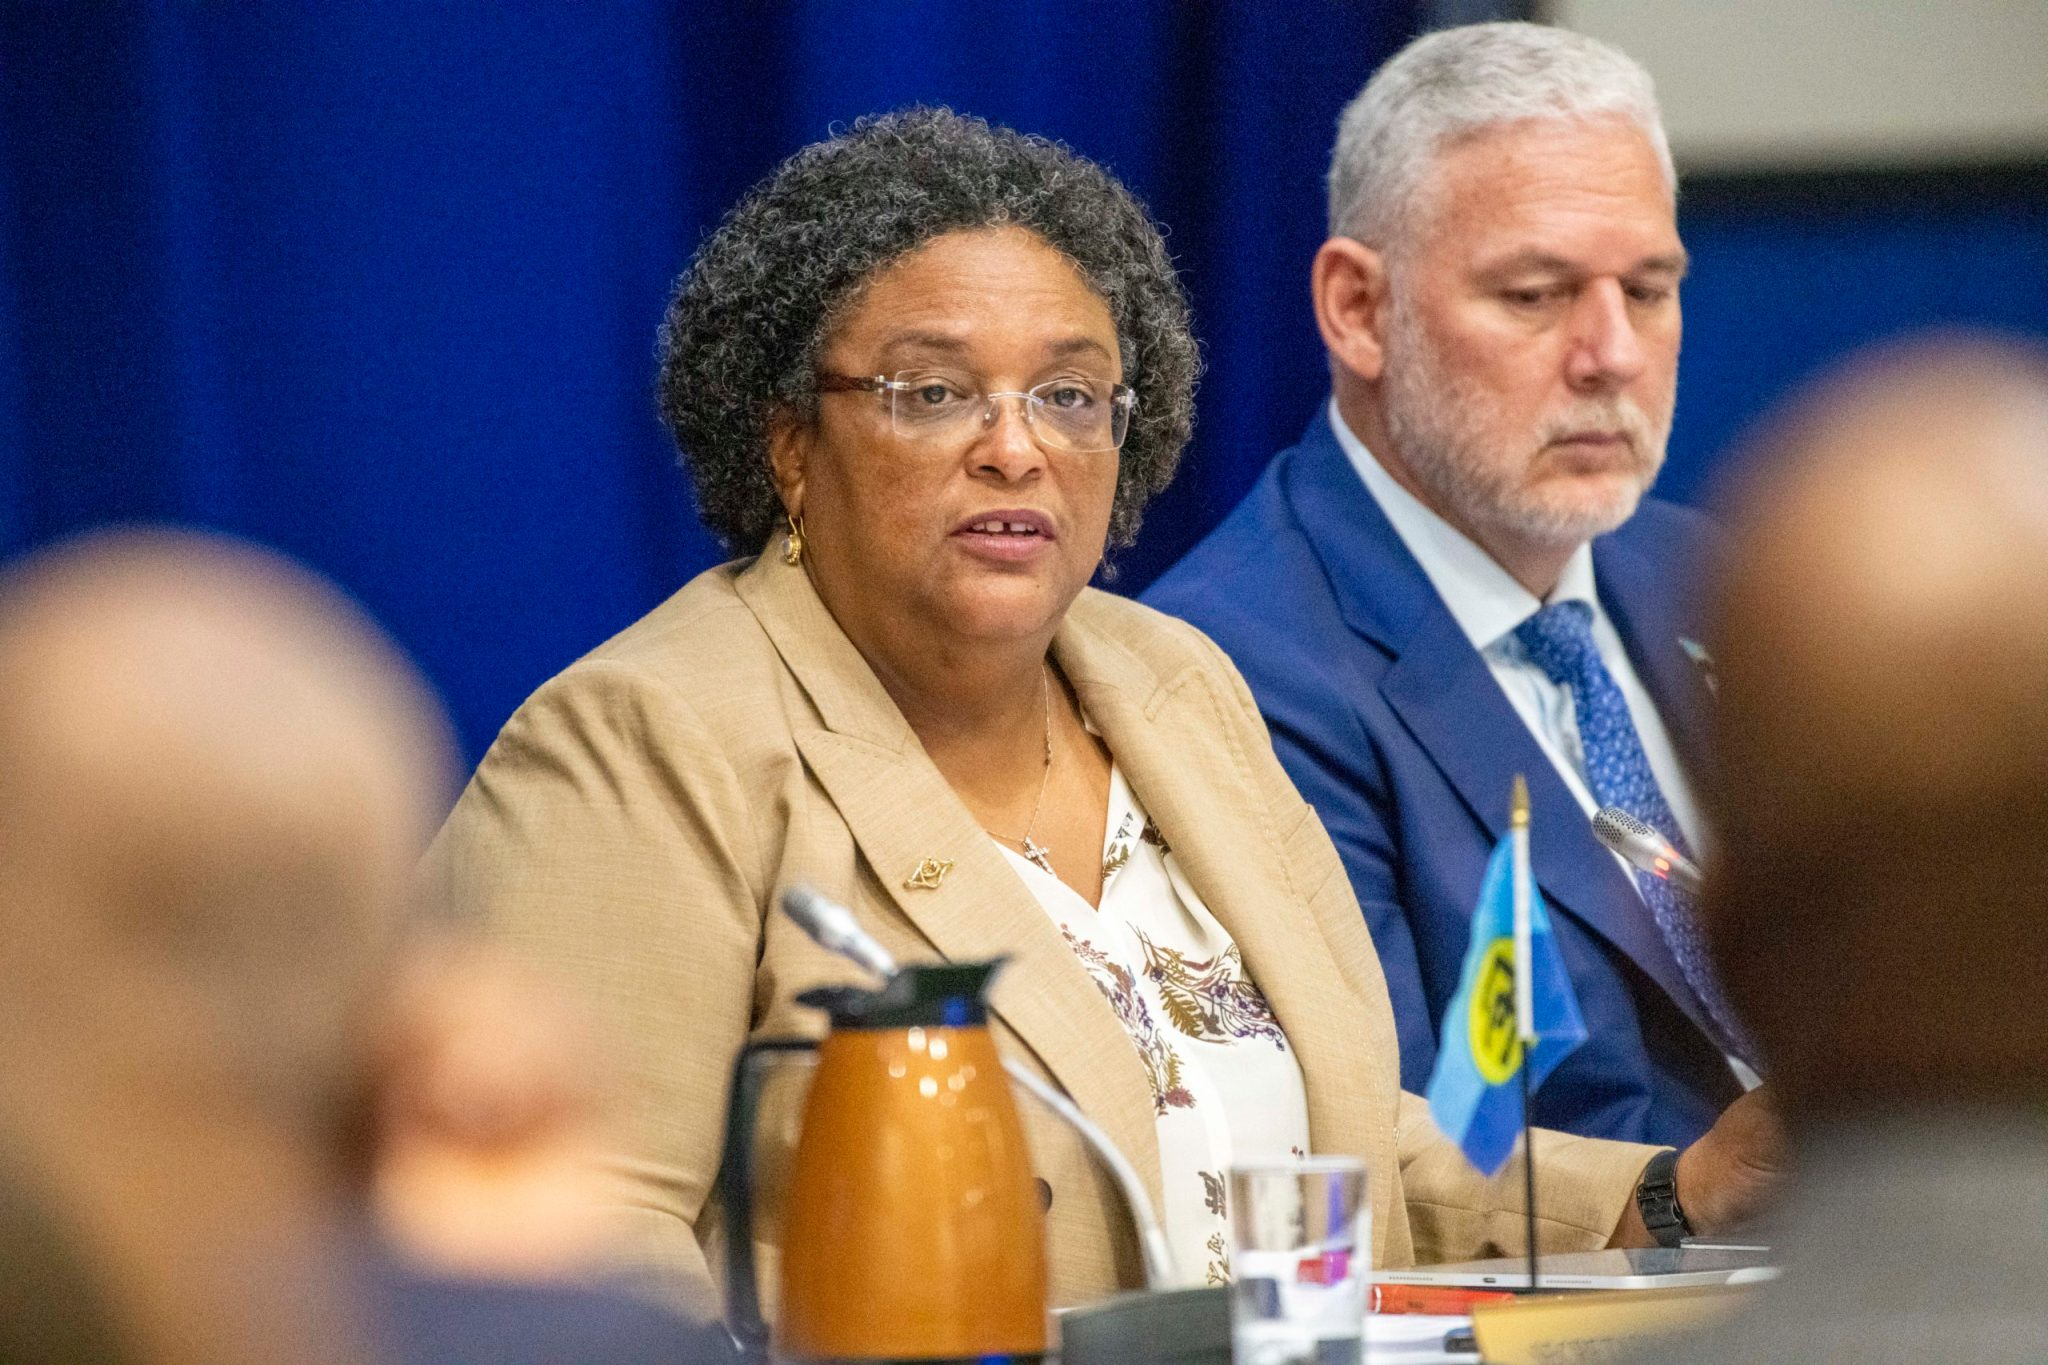 Statement by the Honourable Mia Amor Mottley, QC, MP, Prime Minister of Barbados, in her capacity as Chairman of the Conference of Heads of the Caribbean Community (CARICOM) // March 7, 2020.